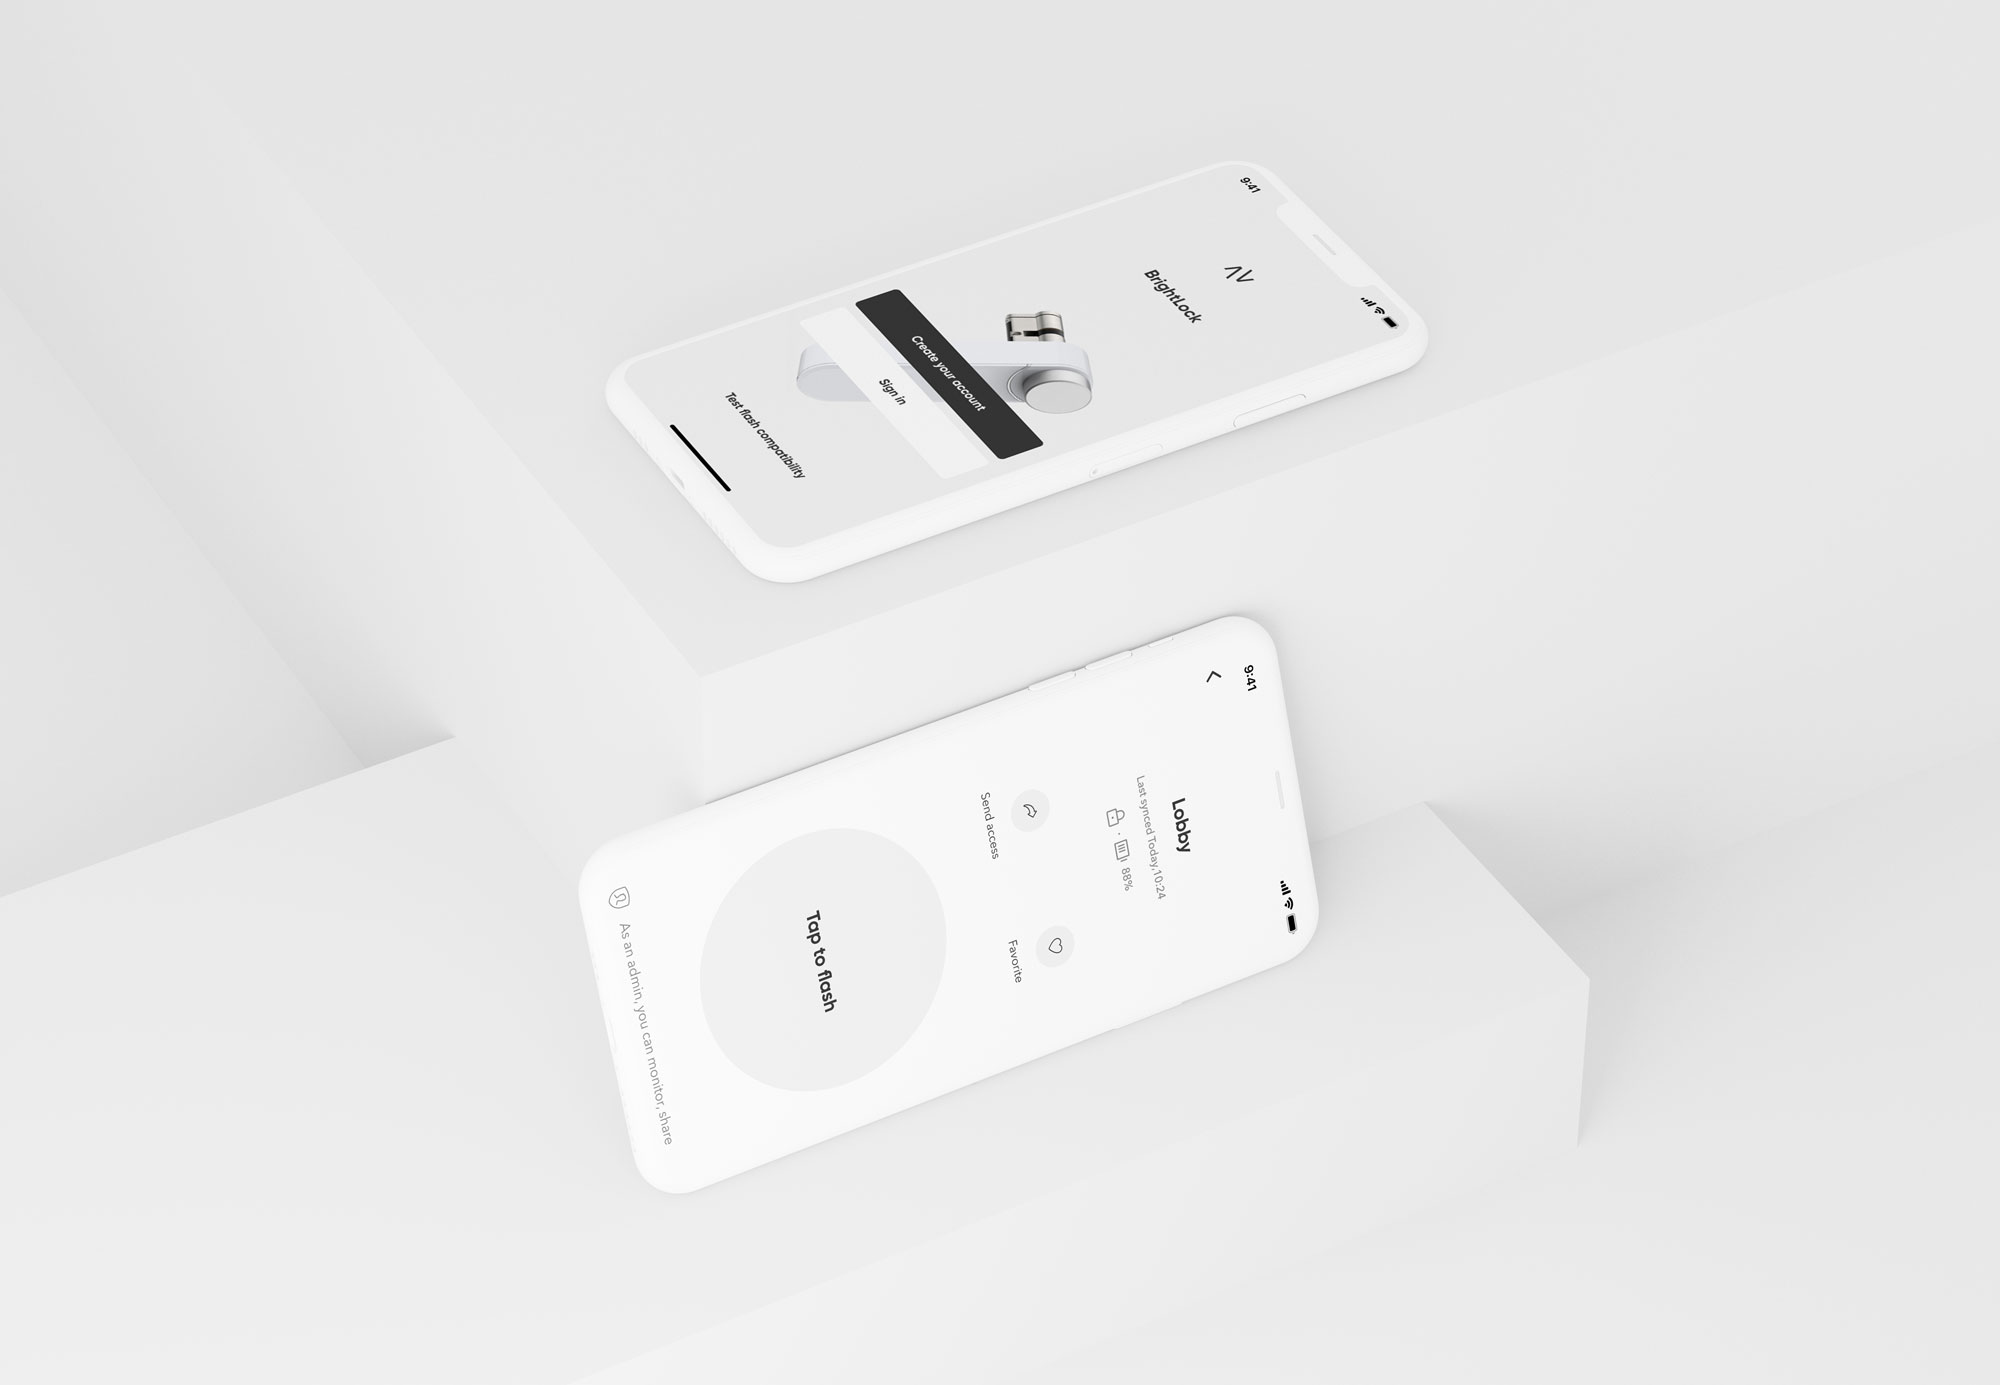 Two phones showing screens of the BrightLock mobile app